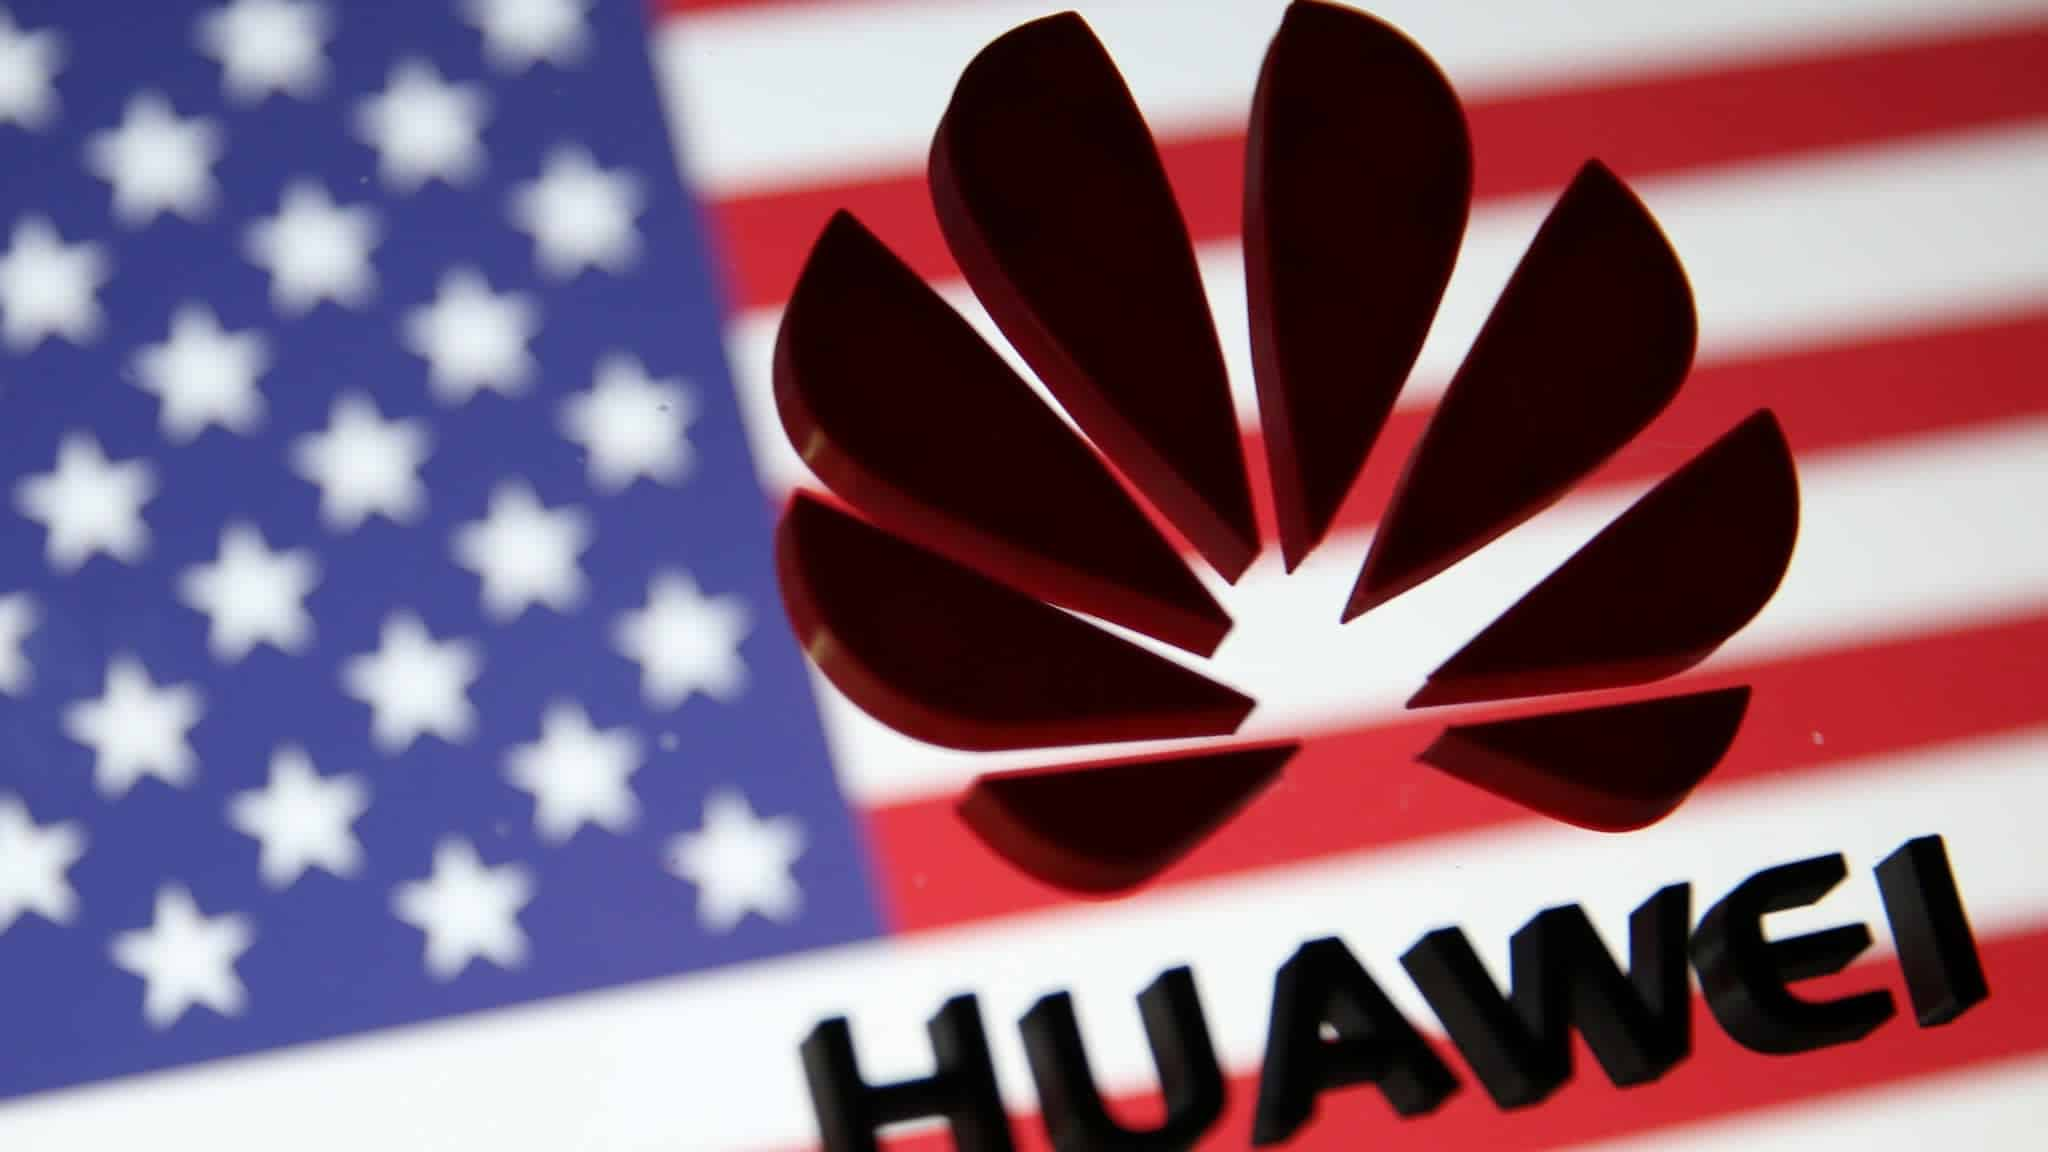 Huawei smartphones, networking equipment uses non-US components